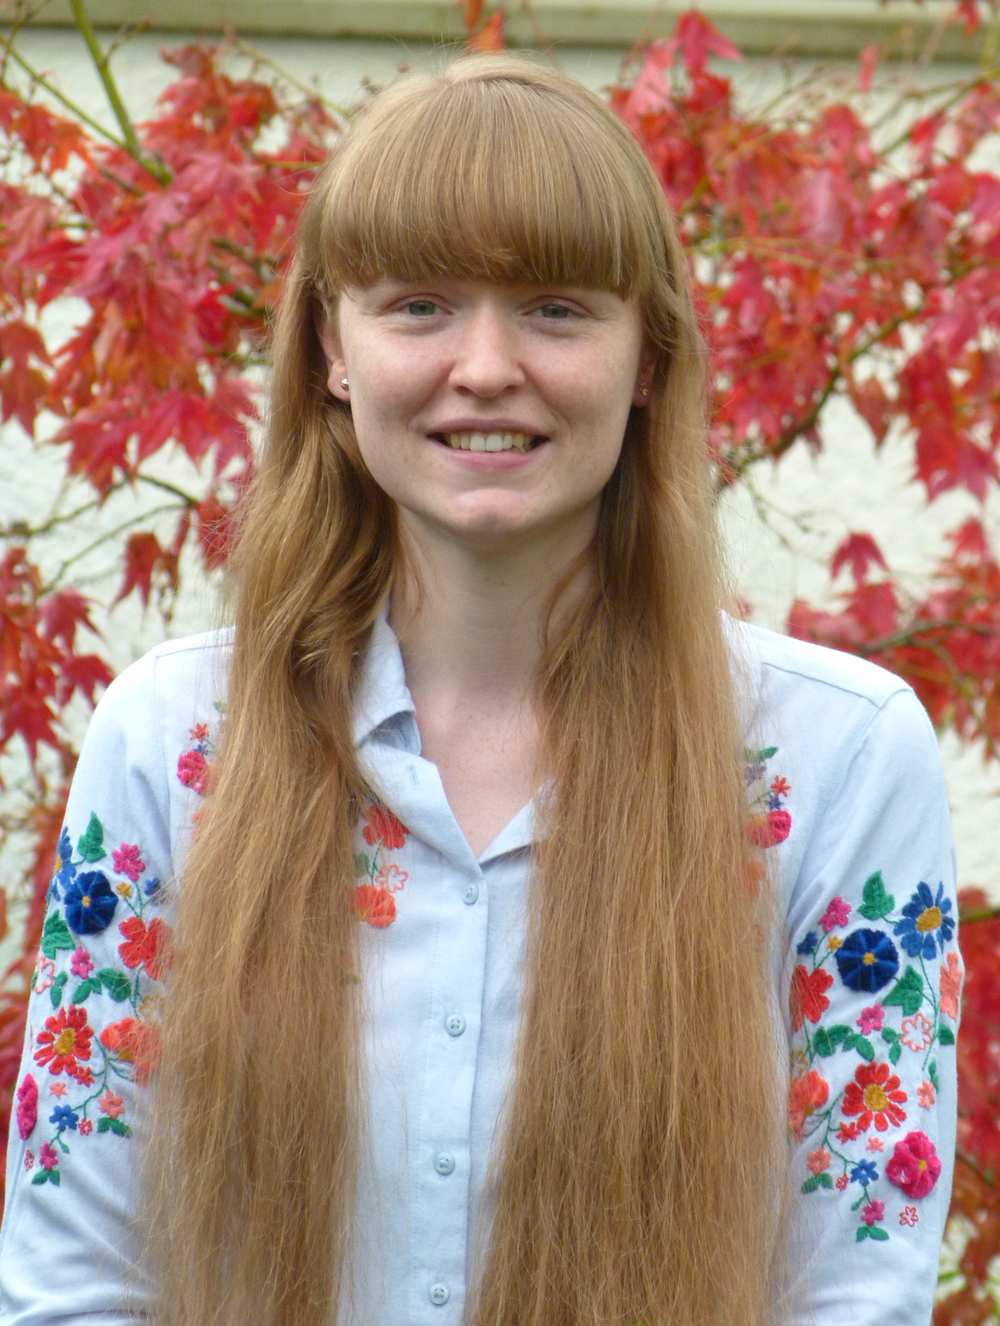 Bryony Lewis, 27, from Raglan, Monmouthshire, scored the joint highest mark worldwide in her Association of Chartered Certified Accountants (ACCA) September 2020 Advanced Taxation exam November 2020